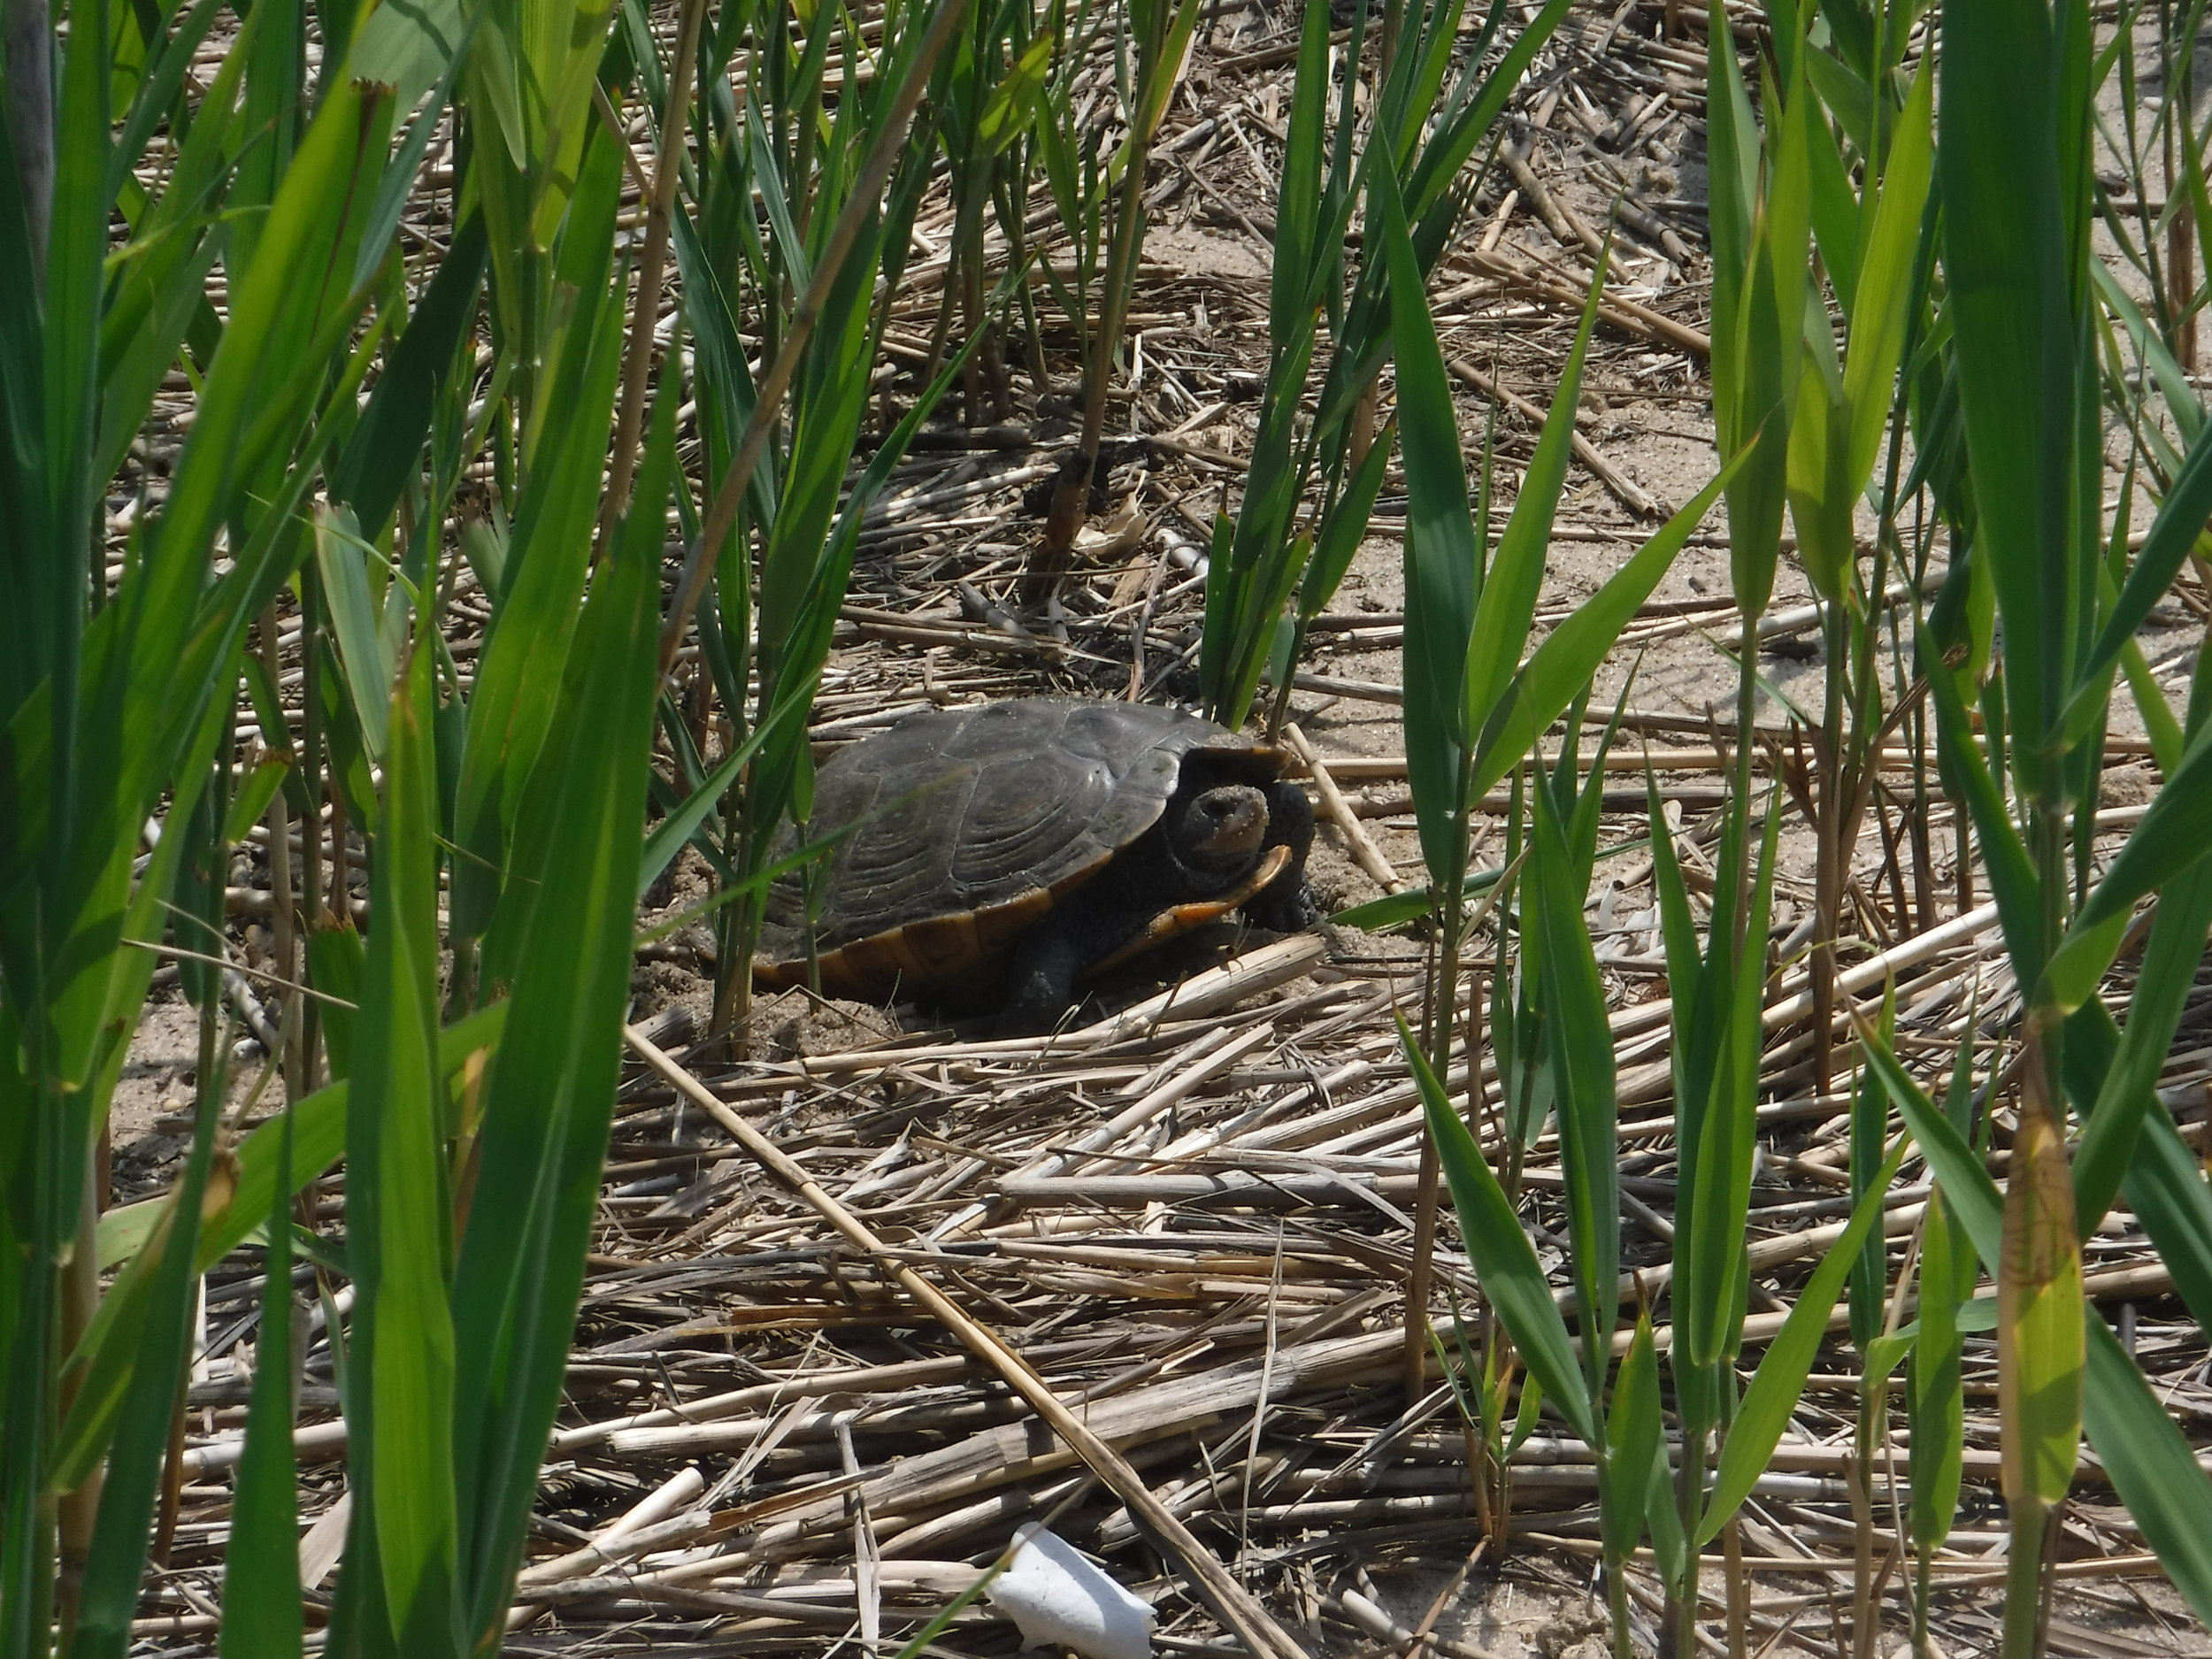 A female Diamondback terrapin in the process of laying eggs near the Navesink River, NJ.